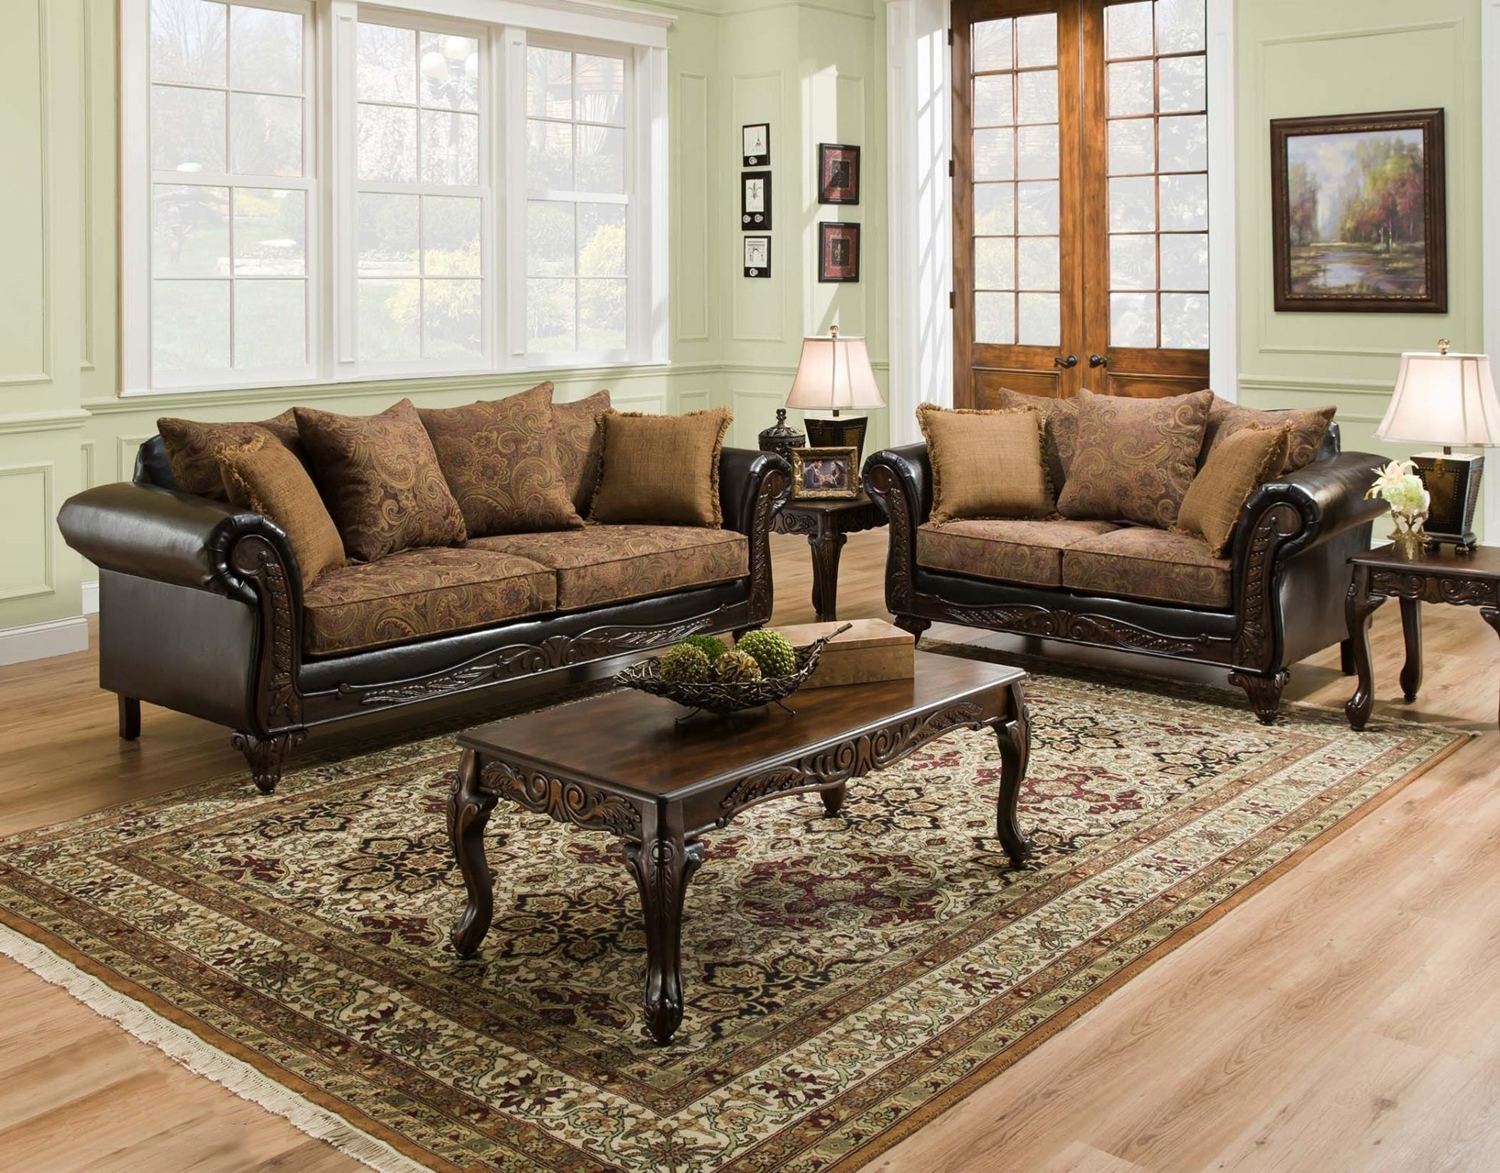 San Marino Traditional Living Room Furniture Set W Wood Trim Accent Pillows Ebay